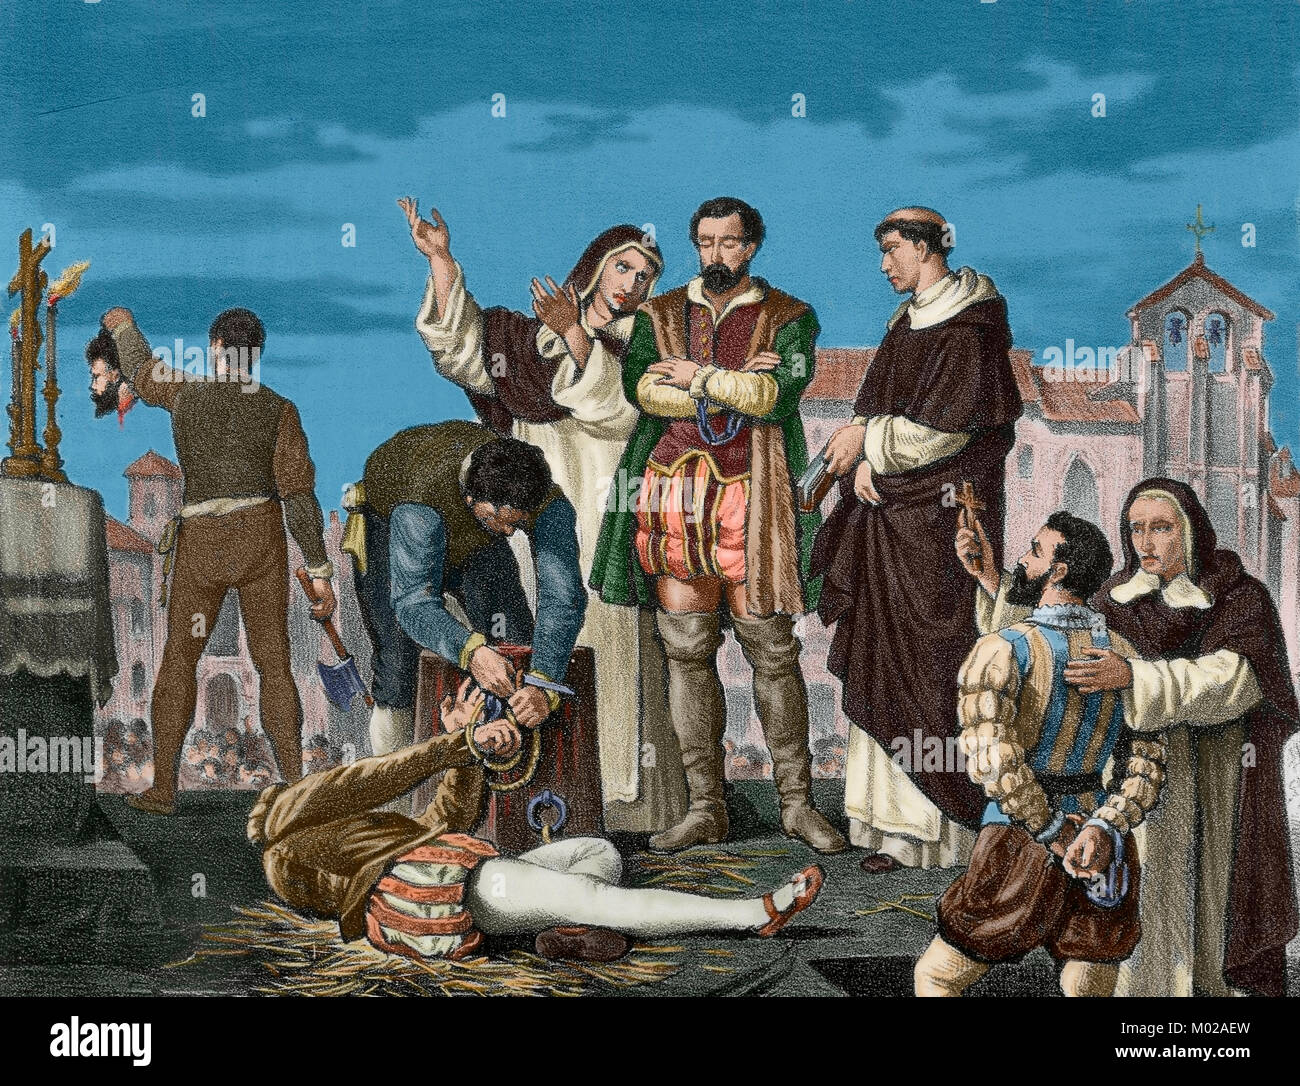 The Revolt of the Comuneros or War of the Communities of Castile, 1520-1521. Uprising by citizens of Castile against - Stock Image